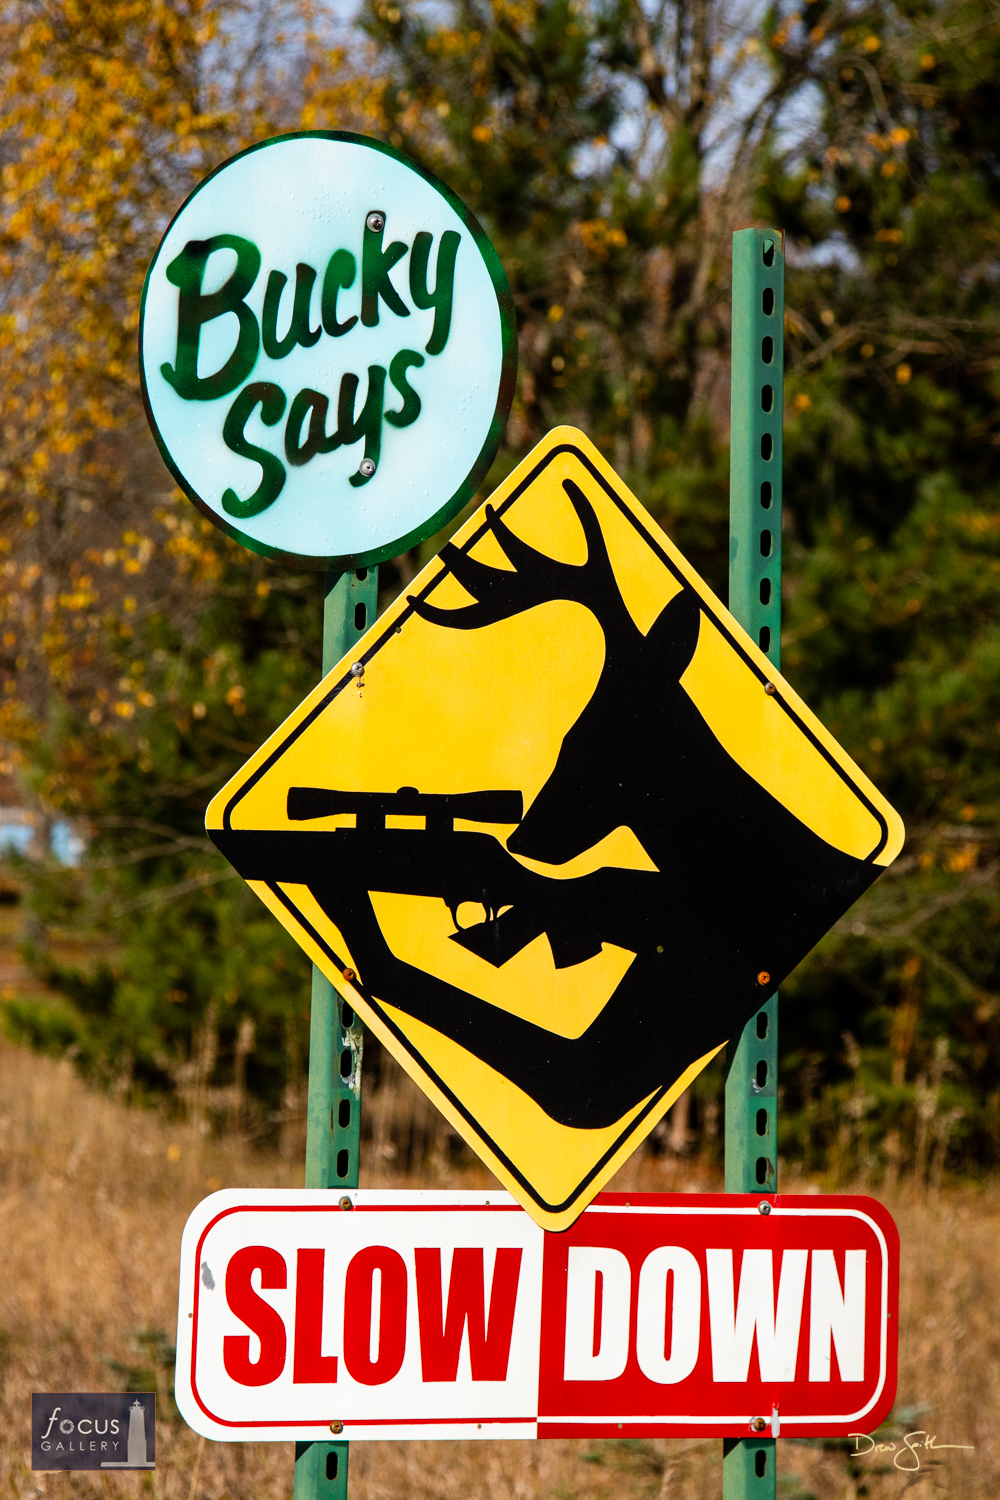 Photo © Drew Smith Driving through Thompsonville I laughed out loud and had to stop to photograph this sign along the road....